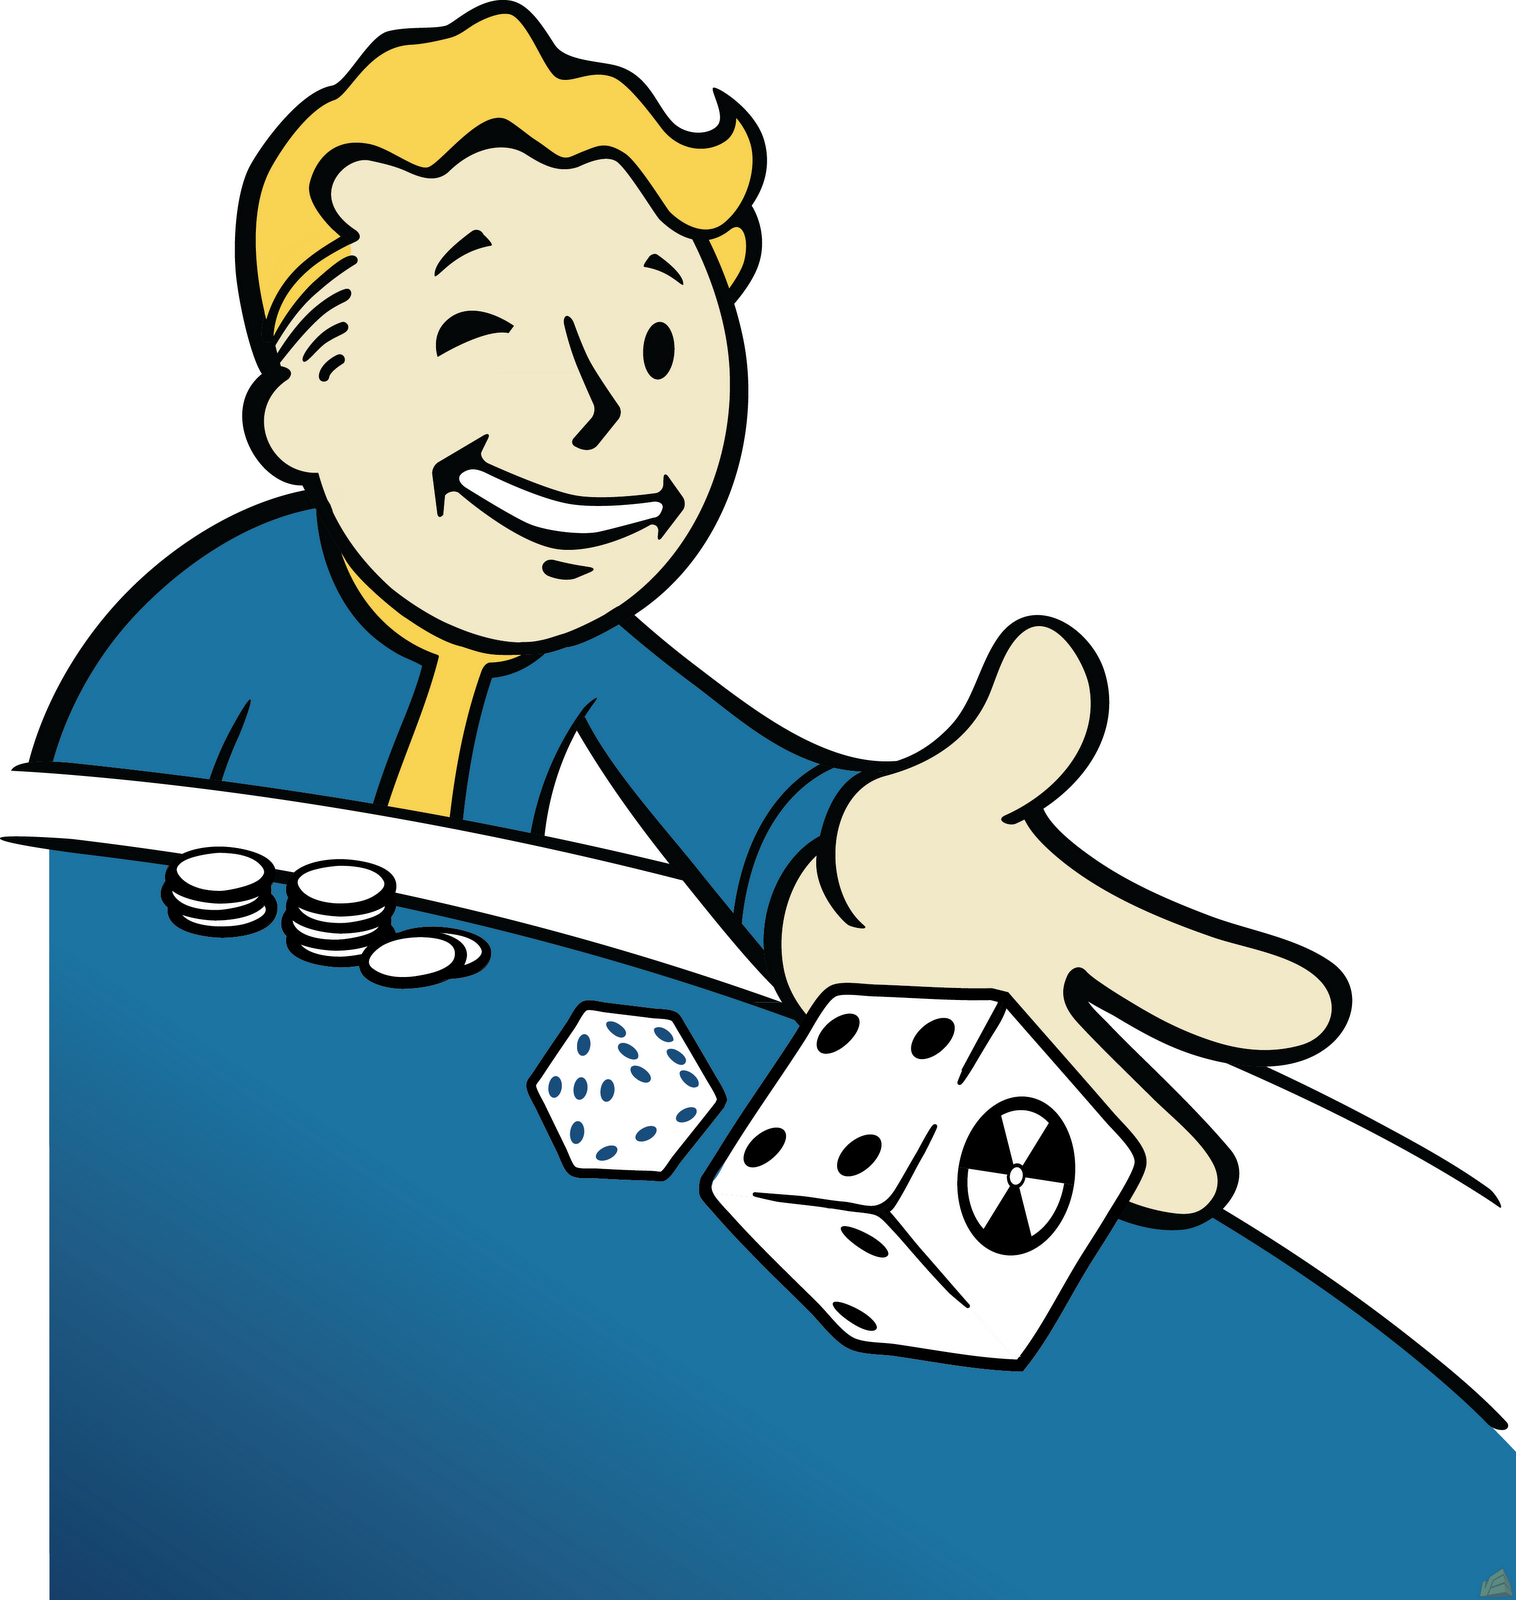 Fallout vault boy clipart image free library Fallout Vault Boy Free Clip Art – Clipart Free Download image free library